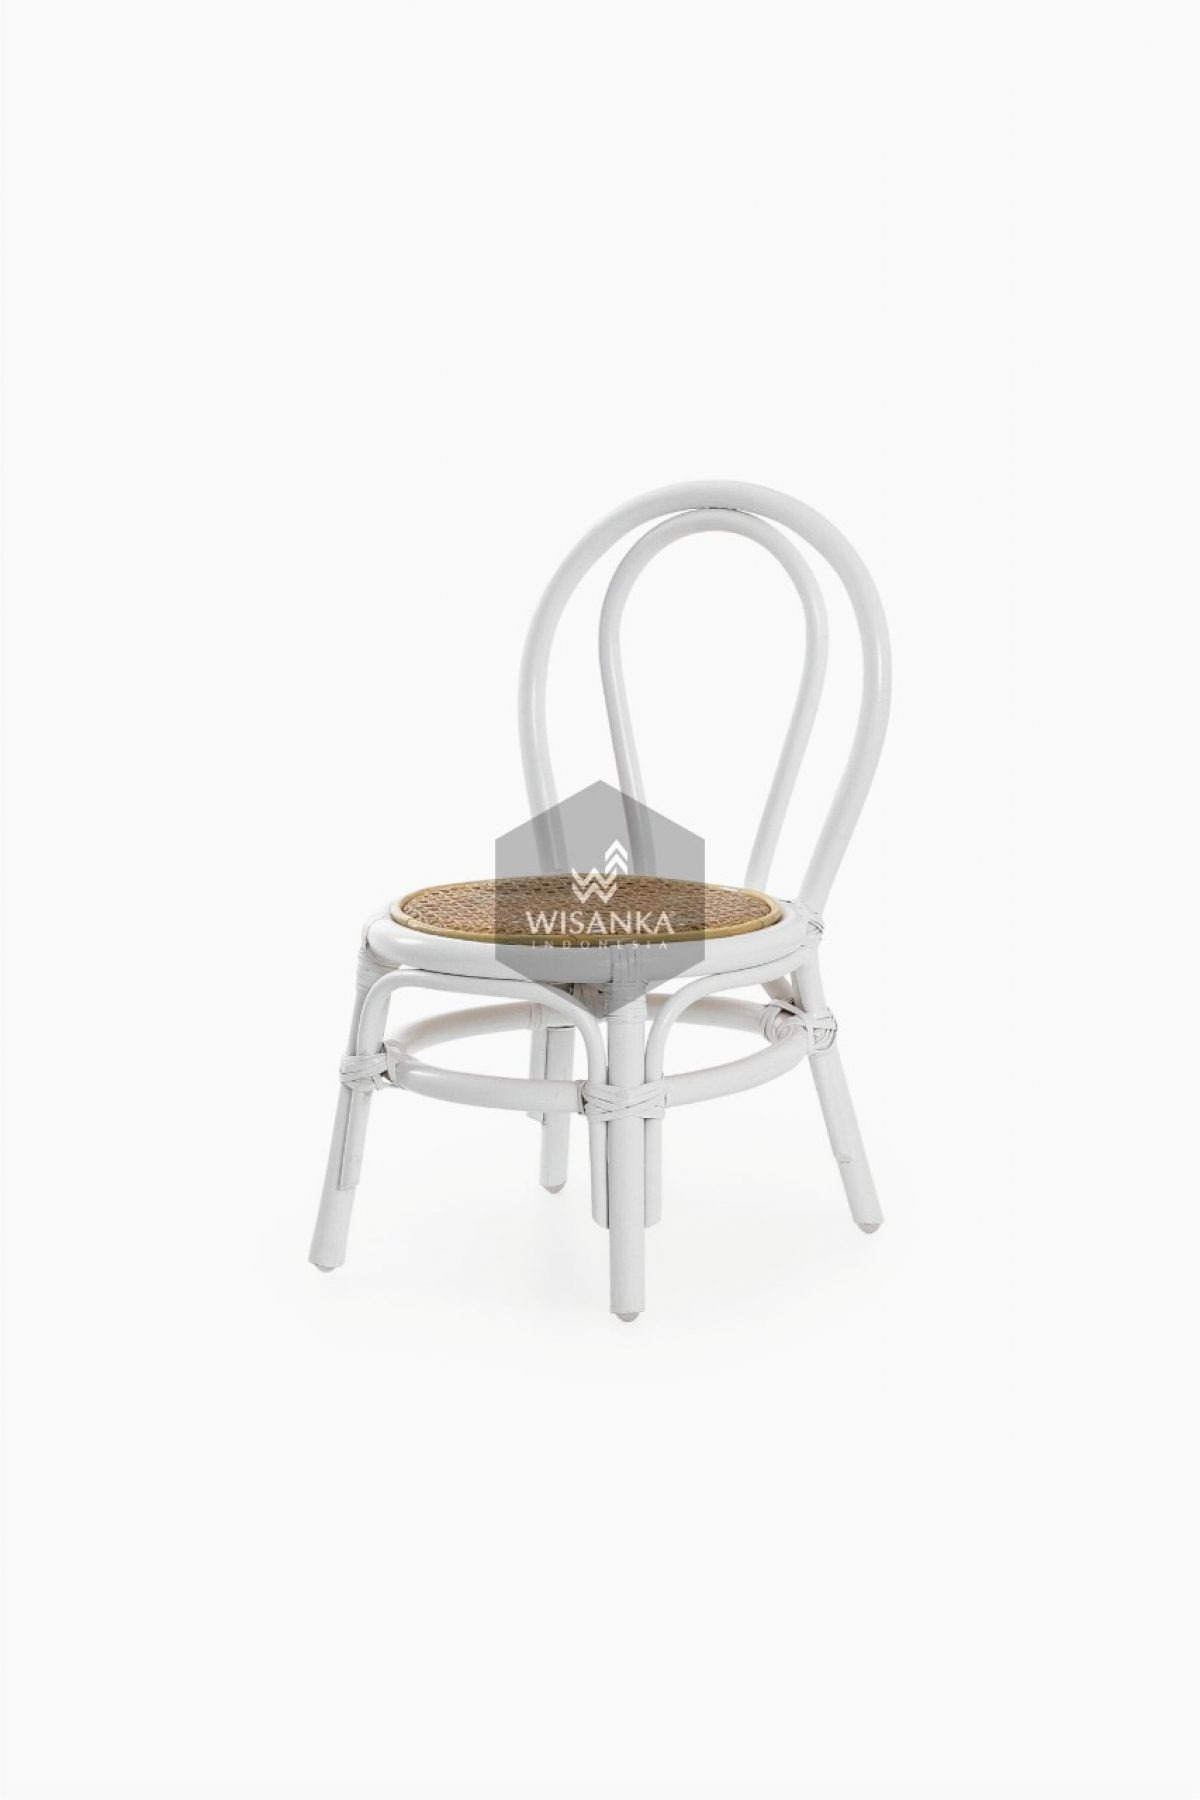 Kala Rattan Chair in White 1200x1800